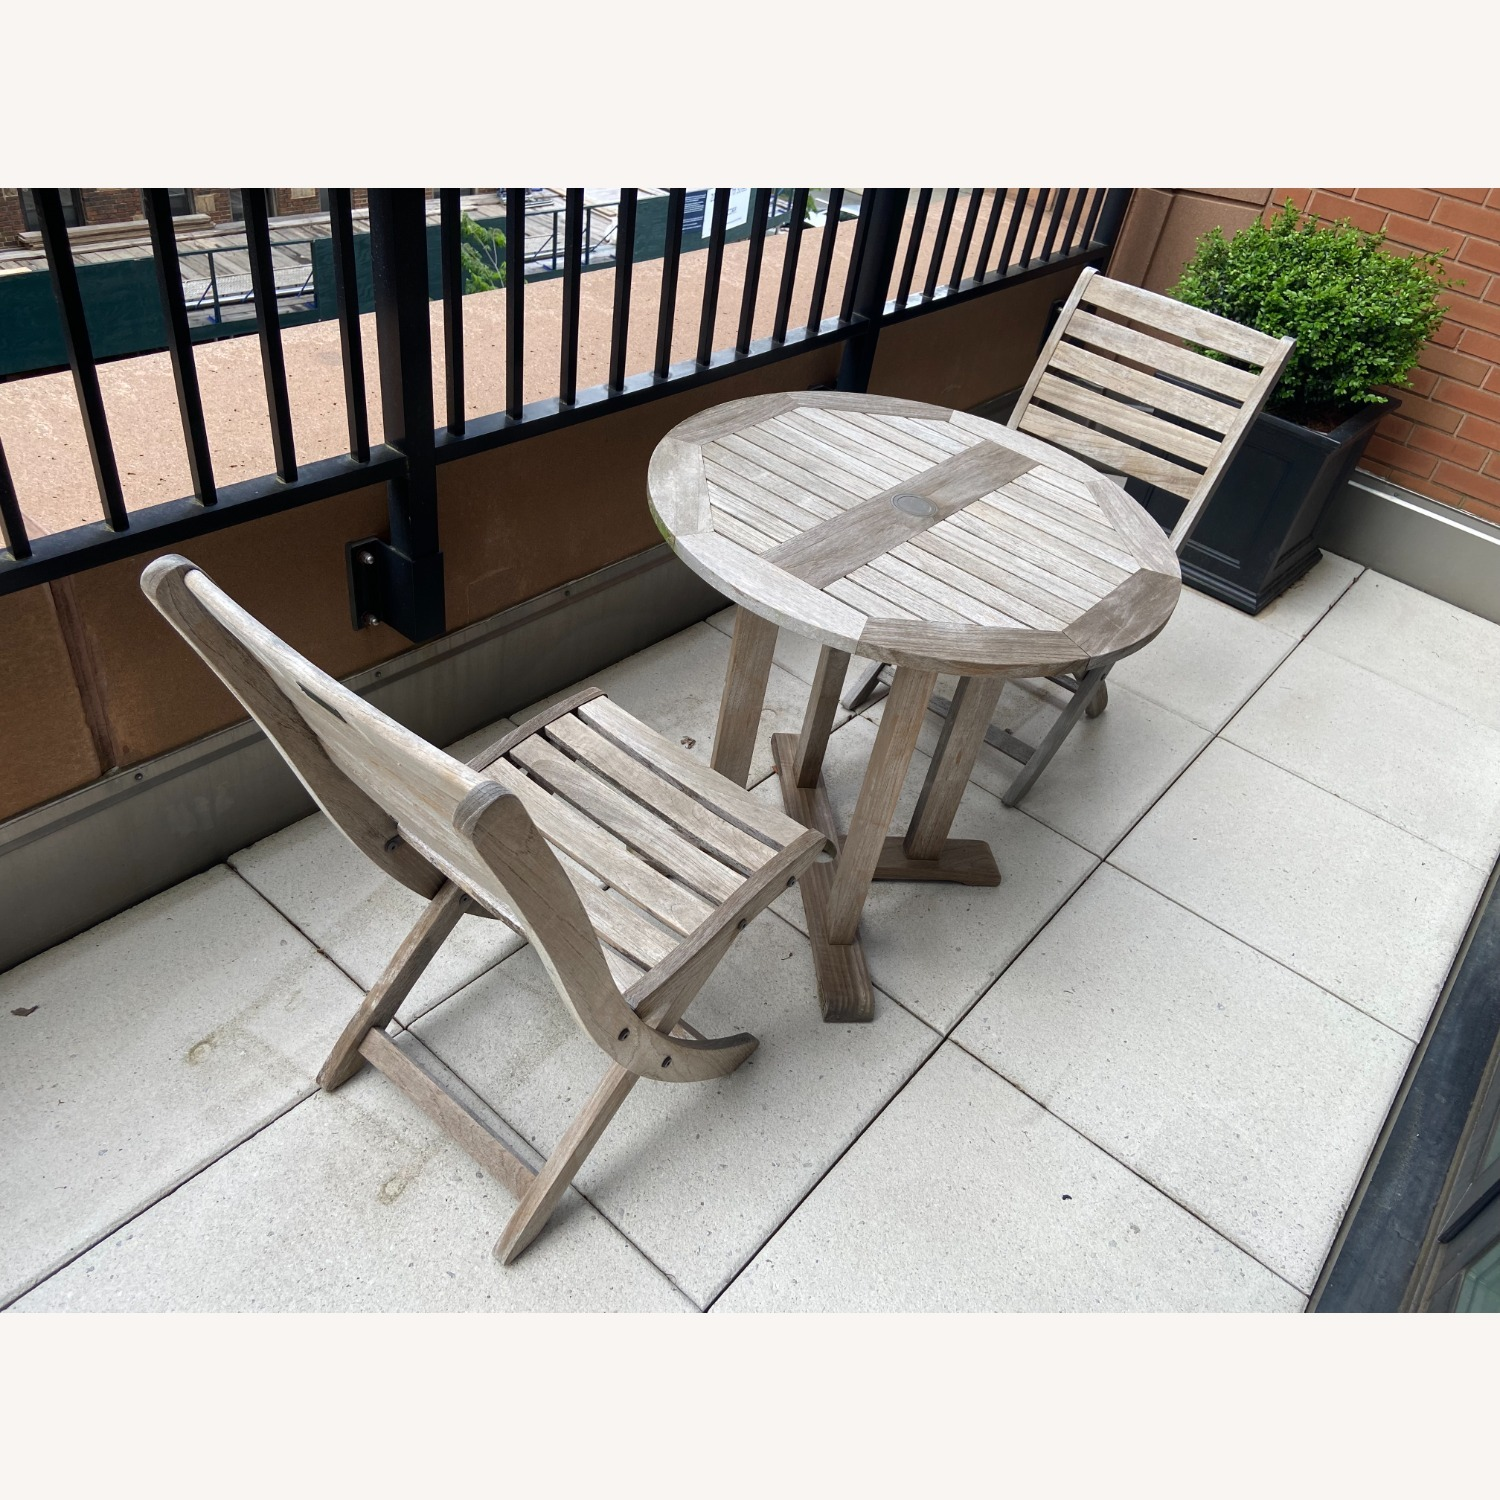 RockWood Outdoor Cafe Table and Chairs - image-2